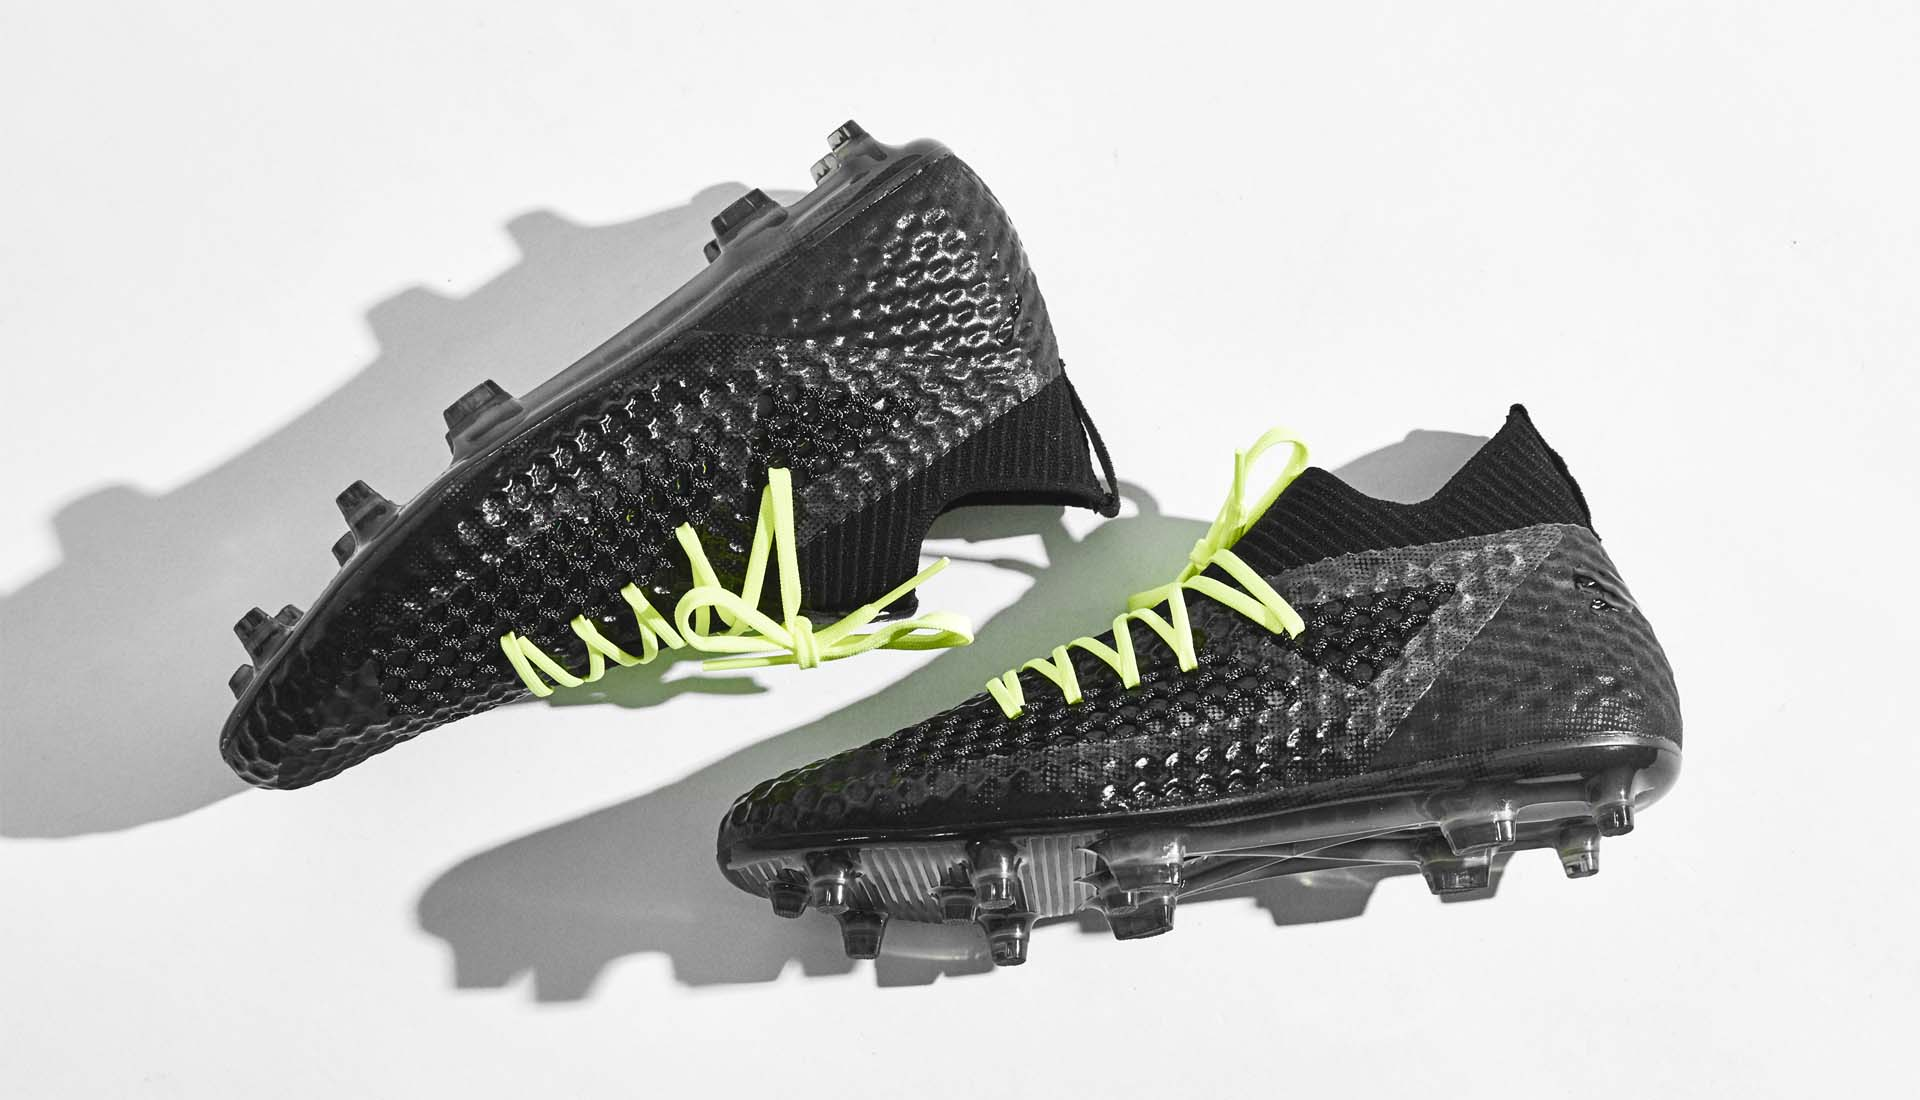 8ef4c7f1fd74 PUMA Tease Upcoming Future 18 Football Boots in Blackout - SoccerBible